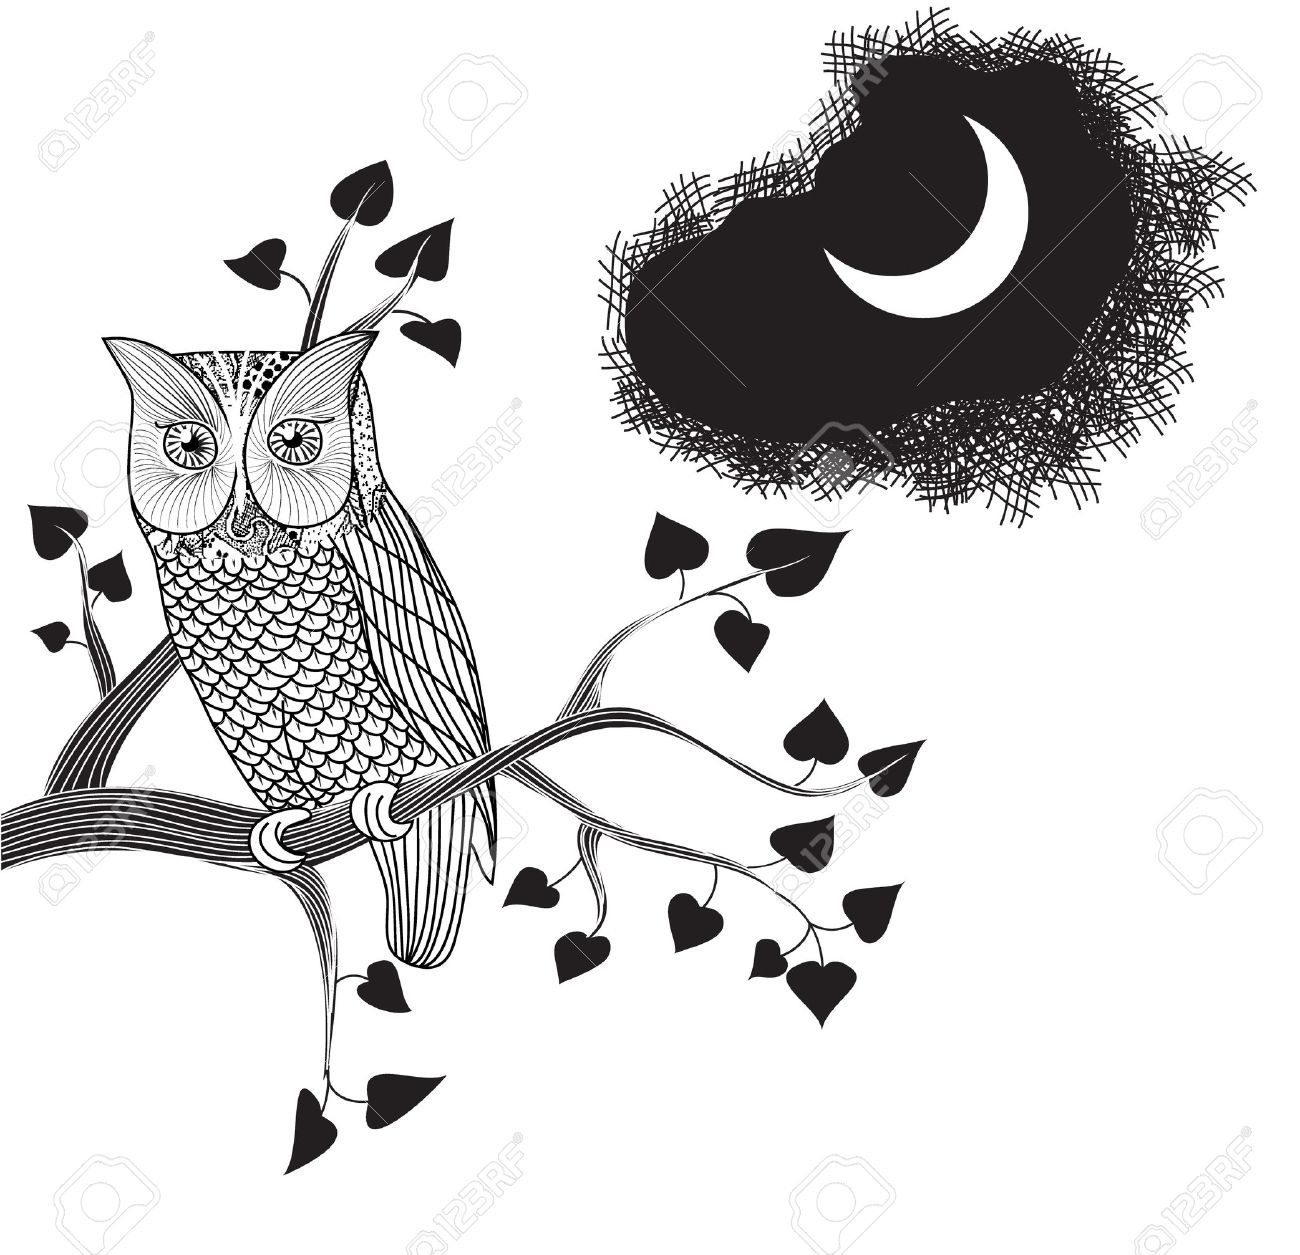 Moonlight and owl perched on a tree branch pencil drawing